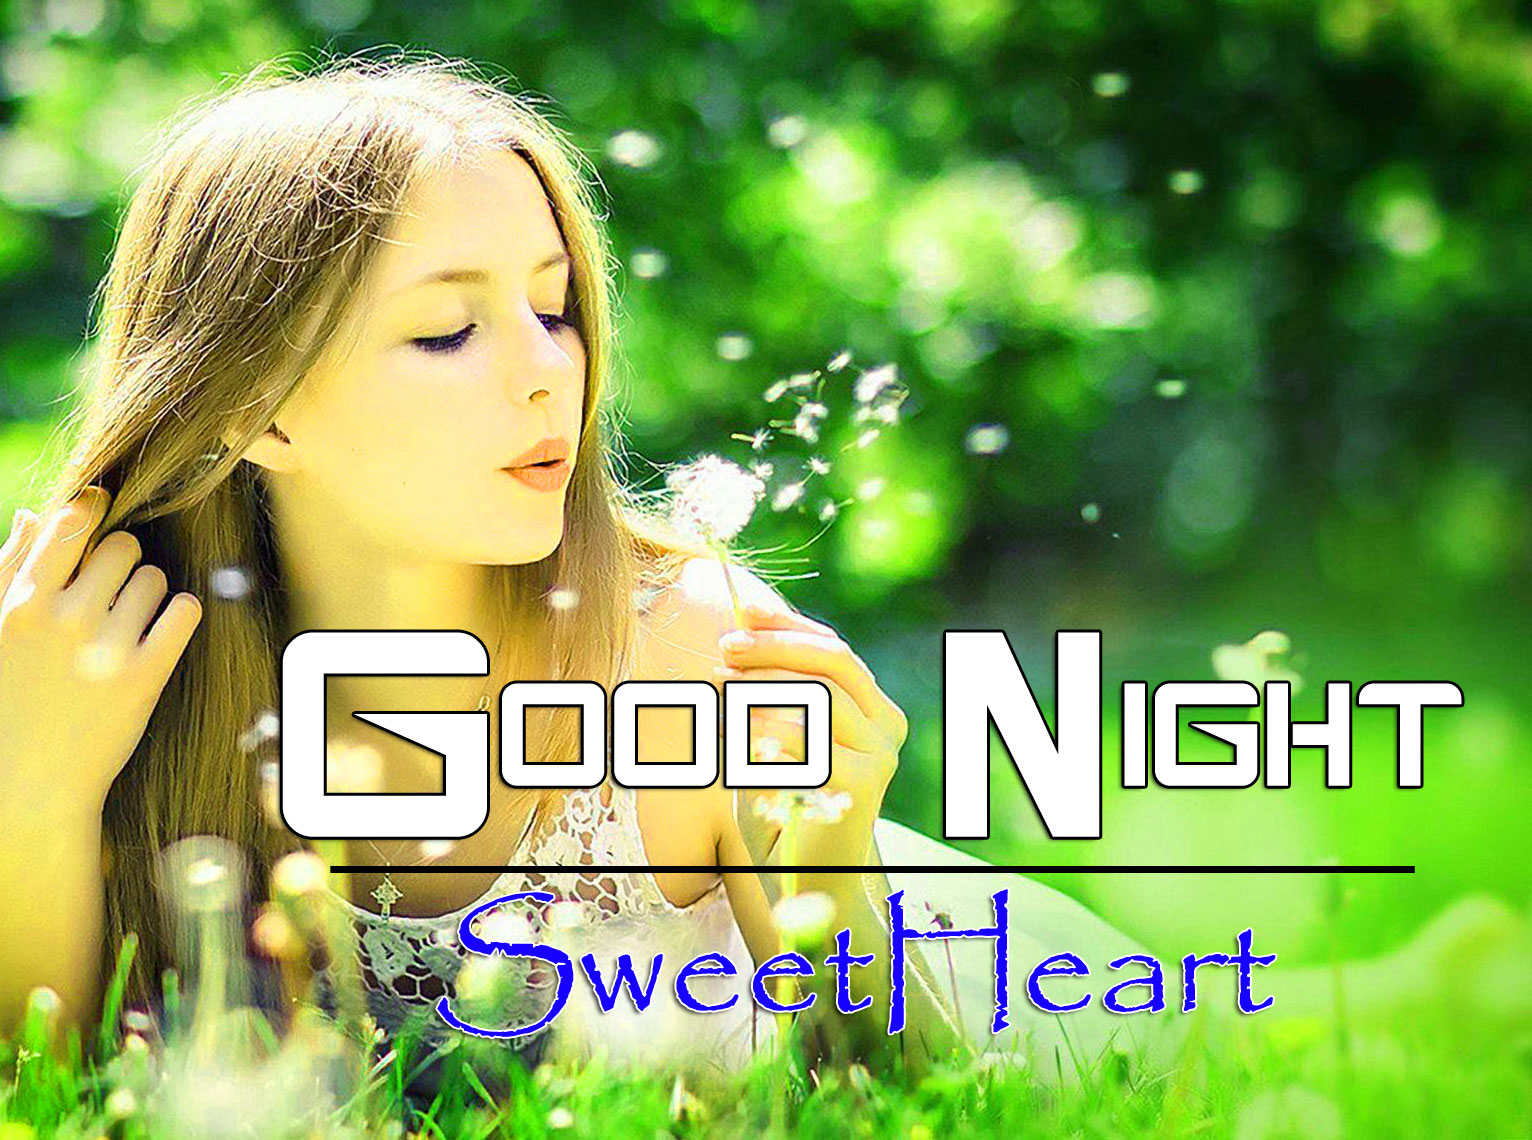 New Good Night Images Pics 2